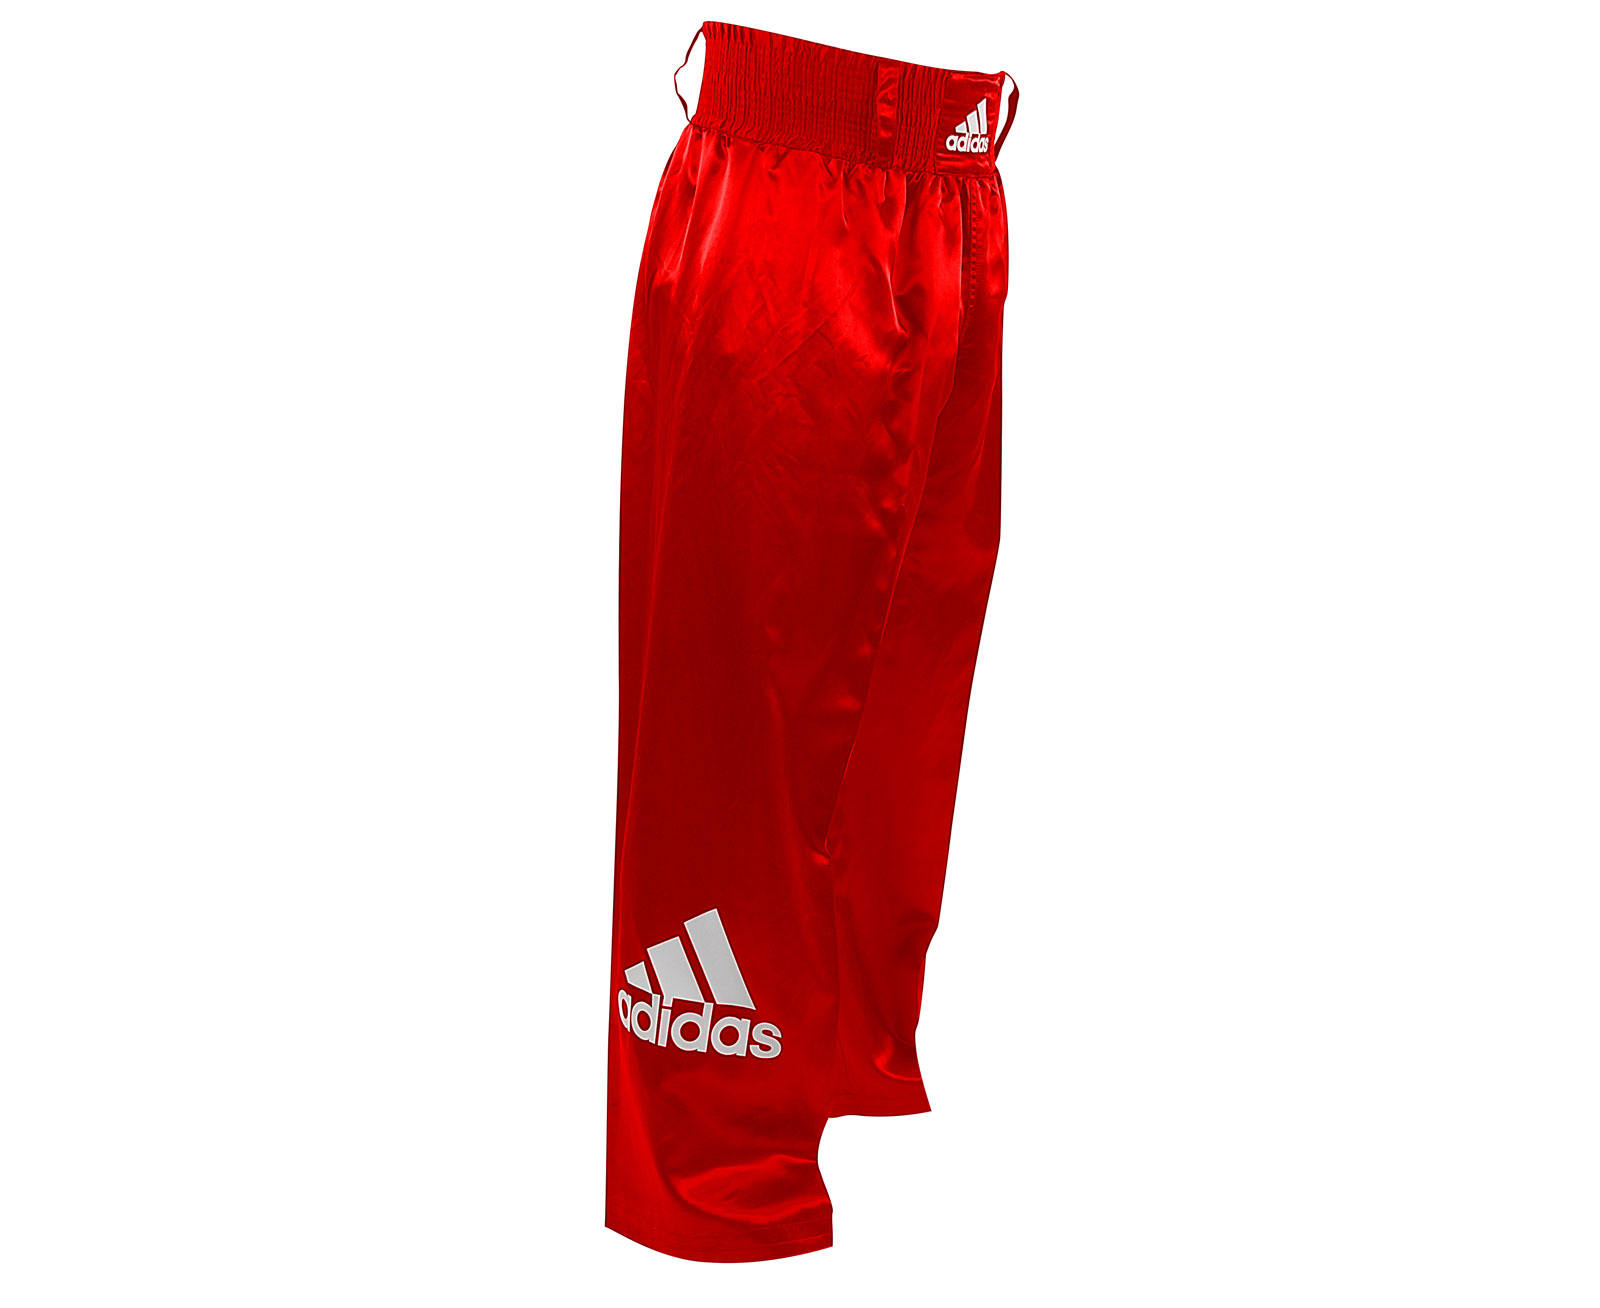 Брюки для кикбоксинга Kick Boxing Pants Full Contact красные